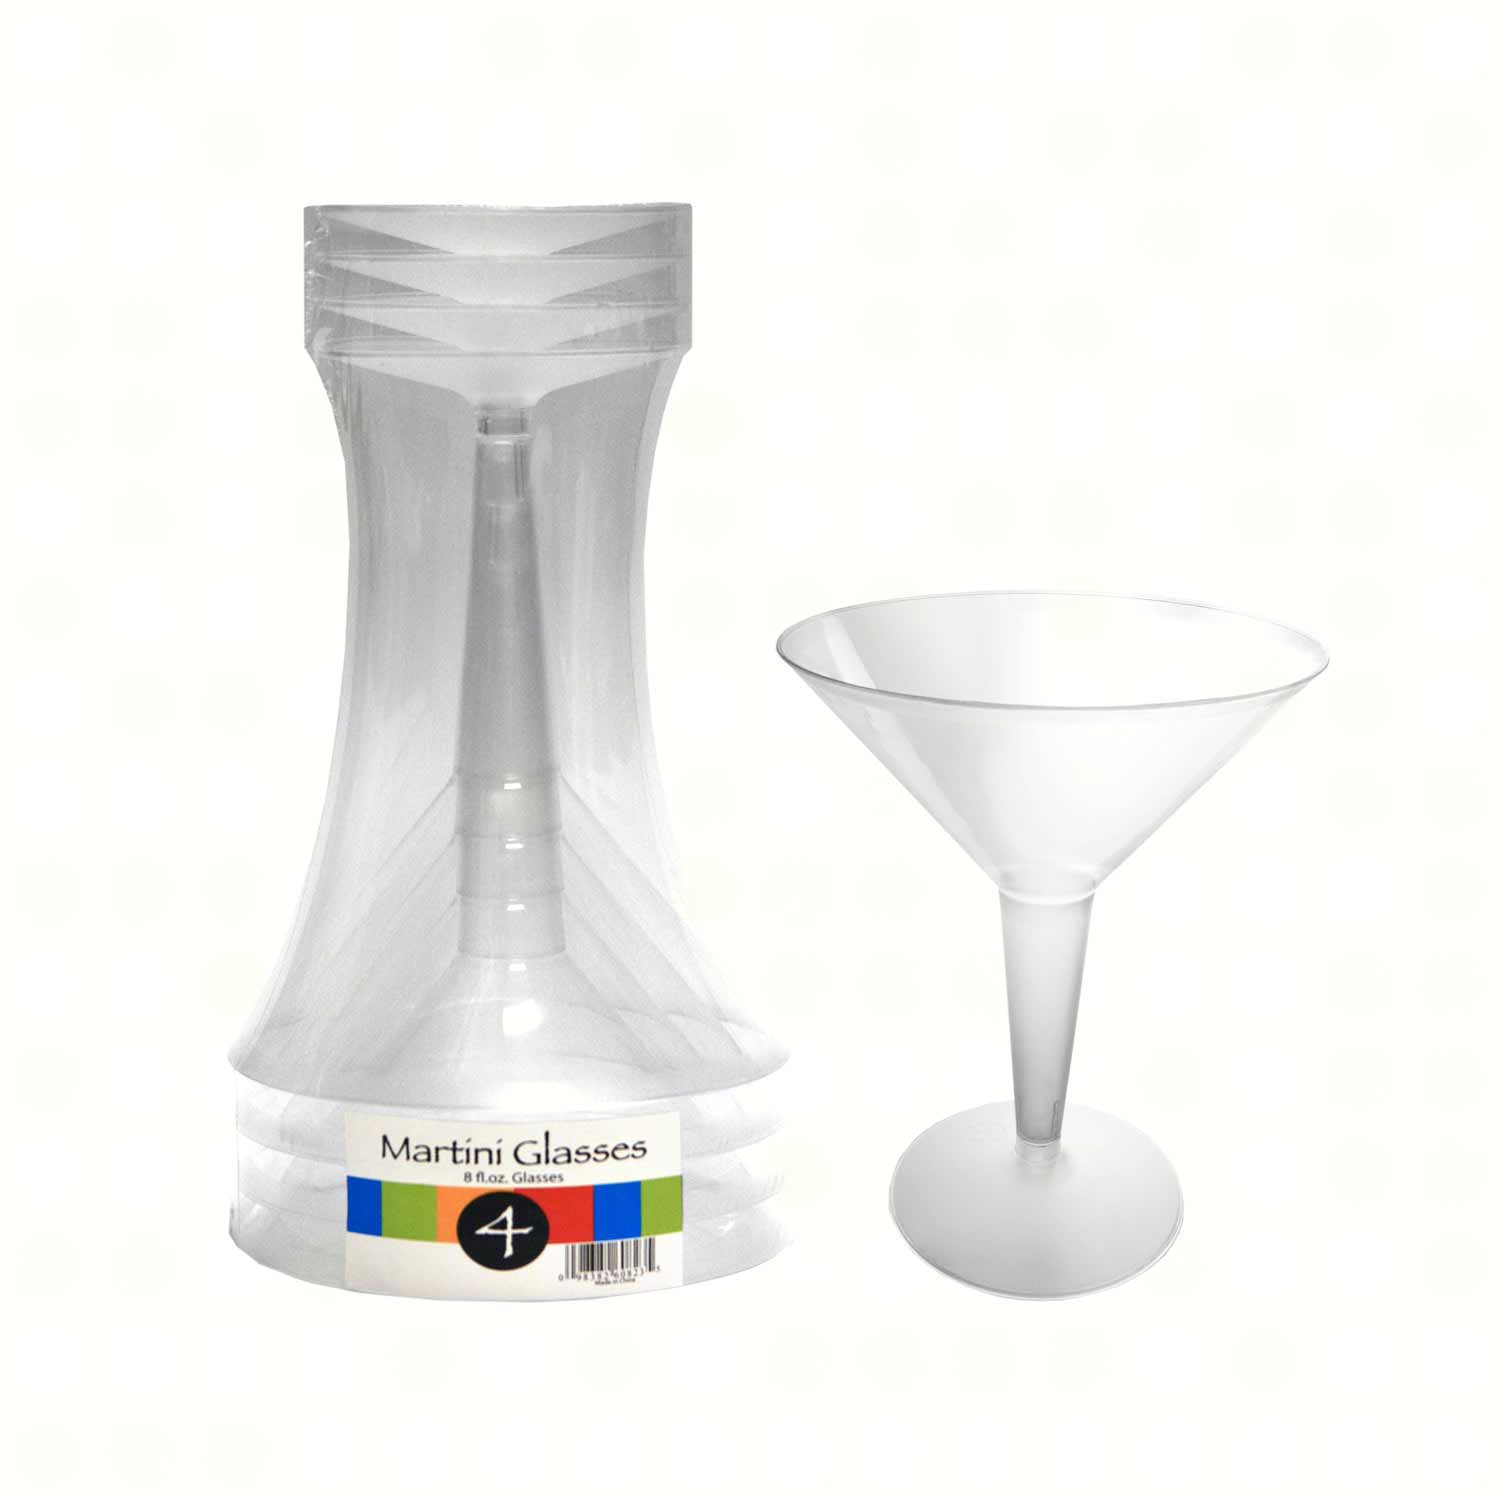 2 pc 8 oz Martini Glasses.  Clear  4 ct